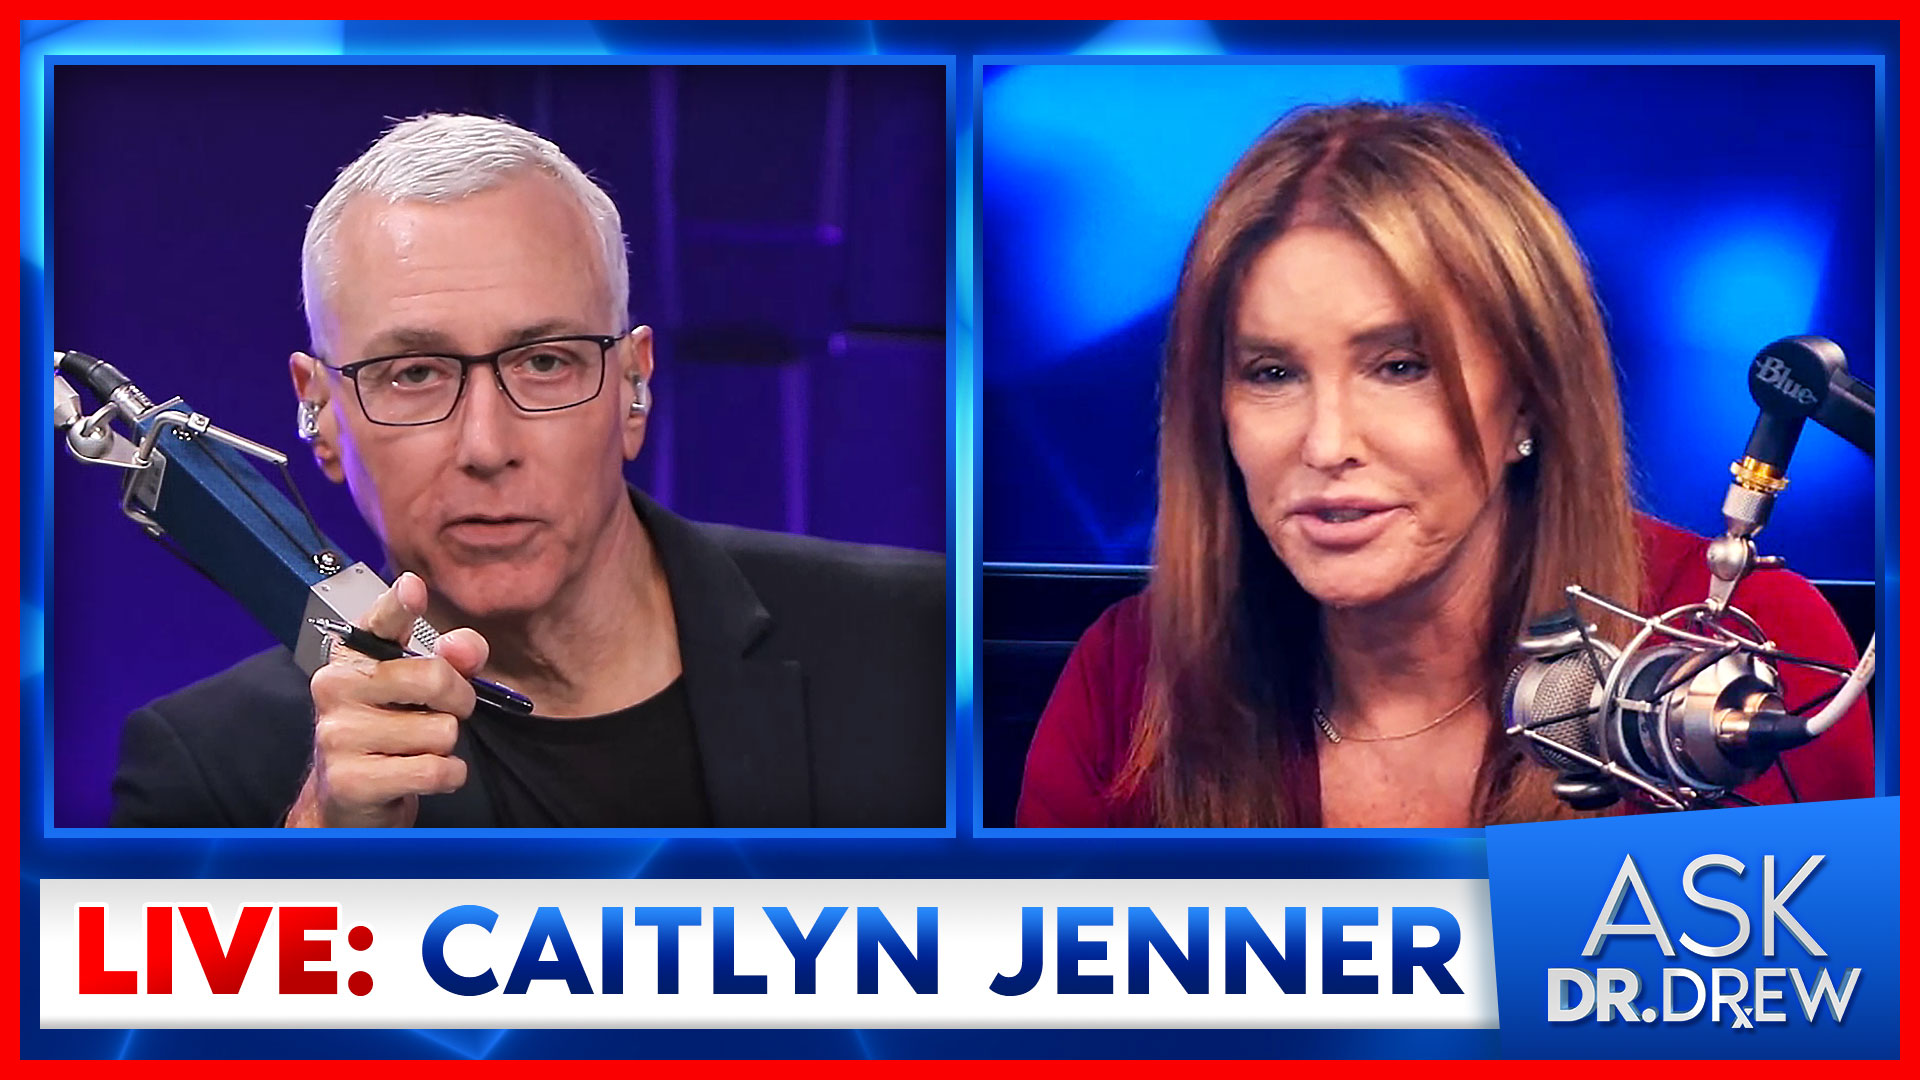 Caitlyn Jenner – Candidate for CA Governor – LIVE on Ask Dr. Drew [August 23, 2021]